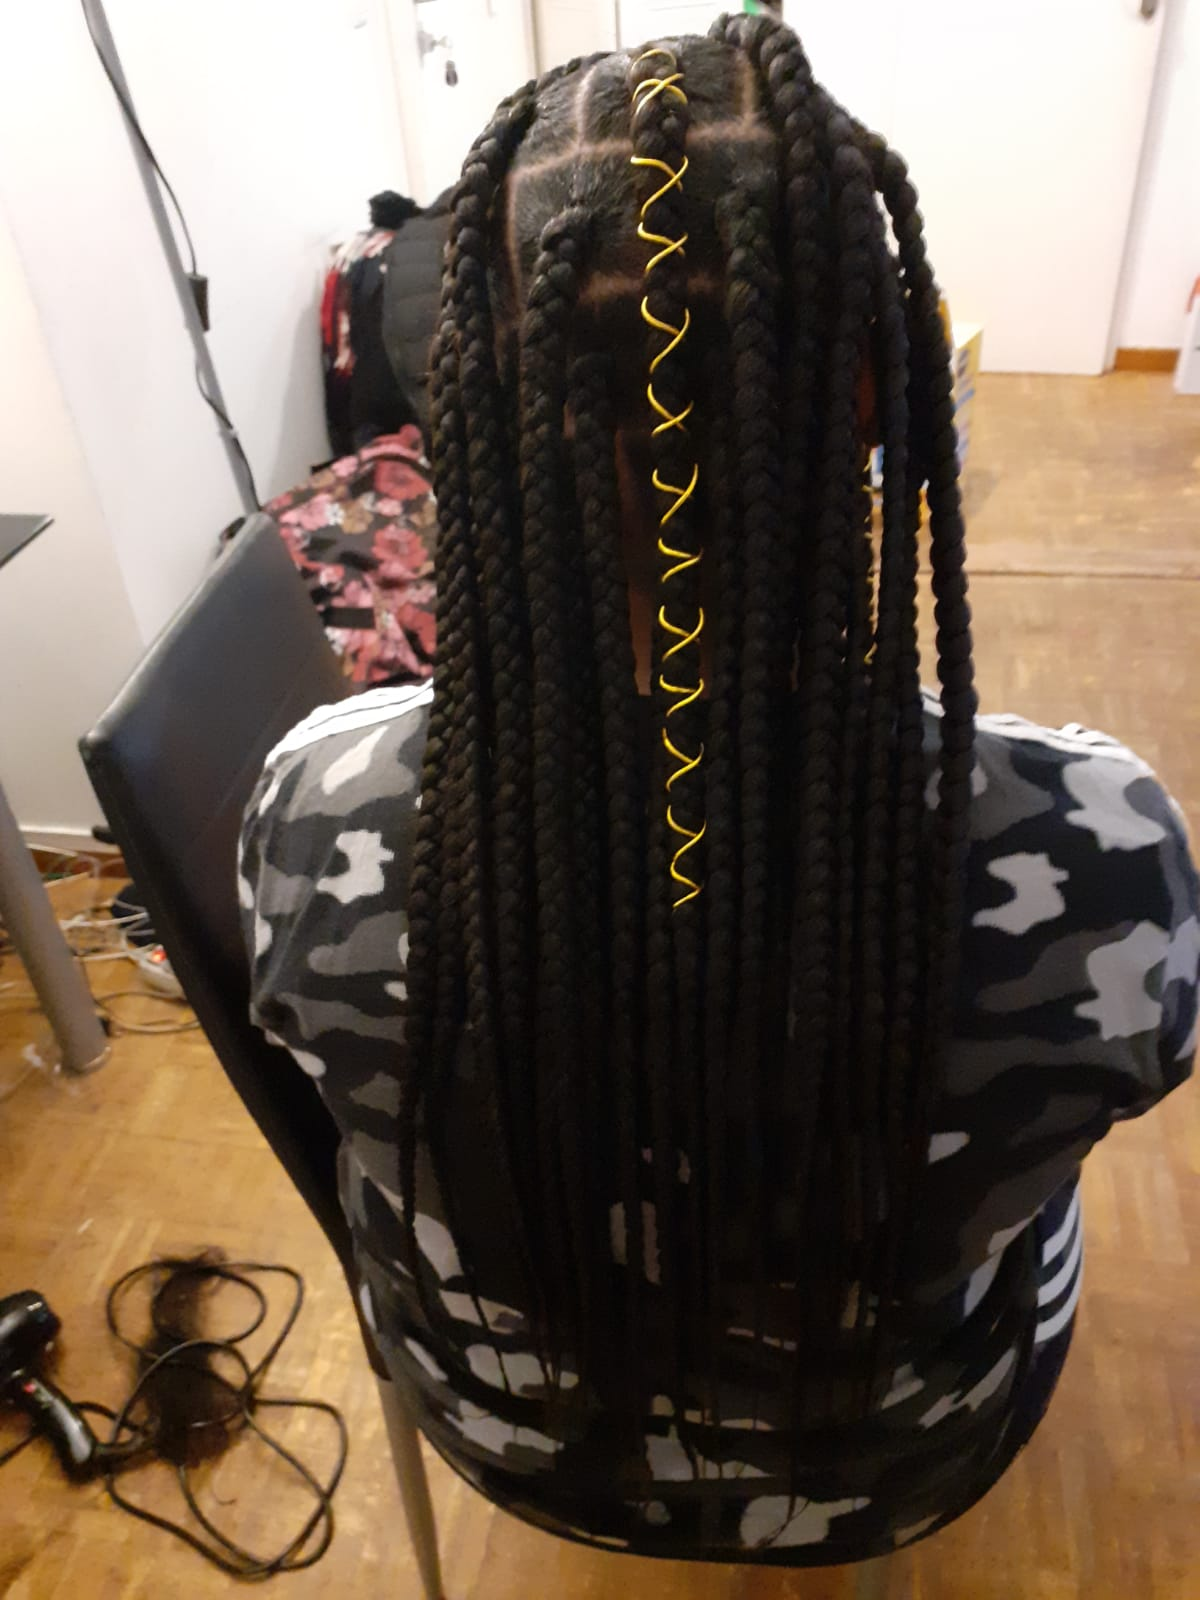 salon de coiffure afro tresse tresses box braids crochet braids vanilles tissages paris 75 77 78 91 92 93 94 95 IRDOJYWV